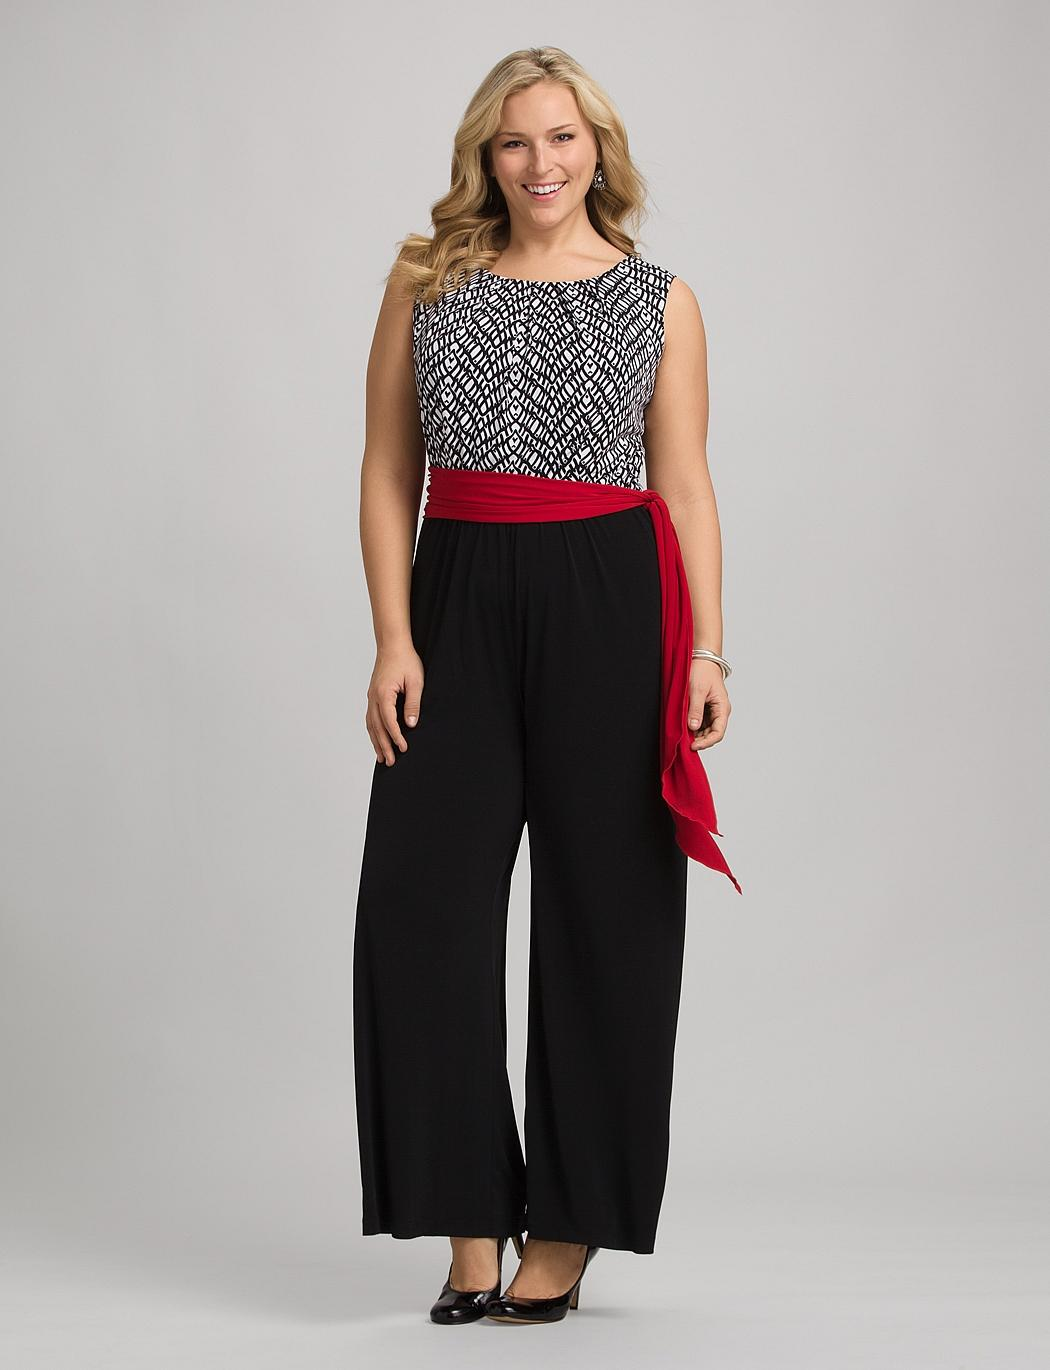 Plus Size Belted Jumpsuit From Dressbarn Com